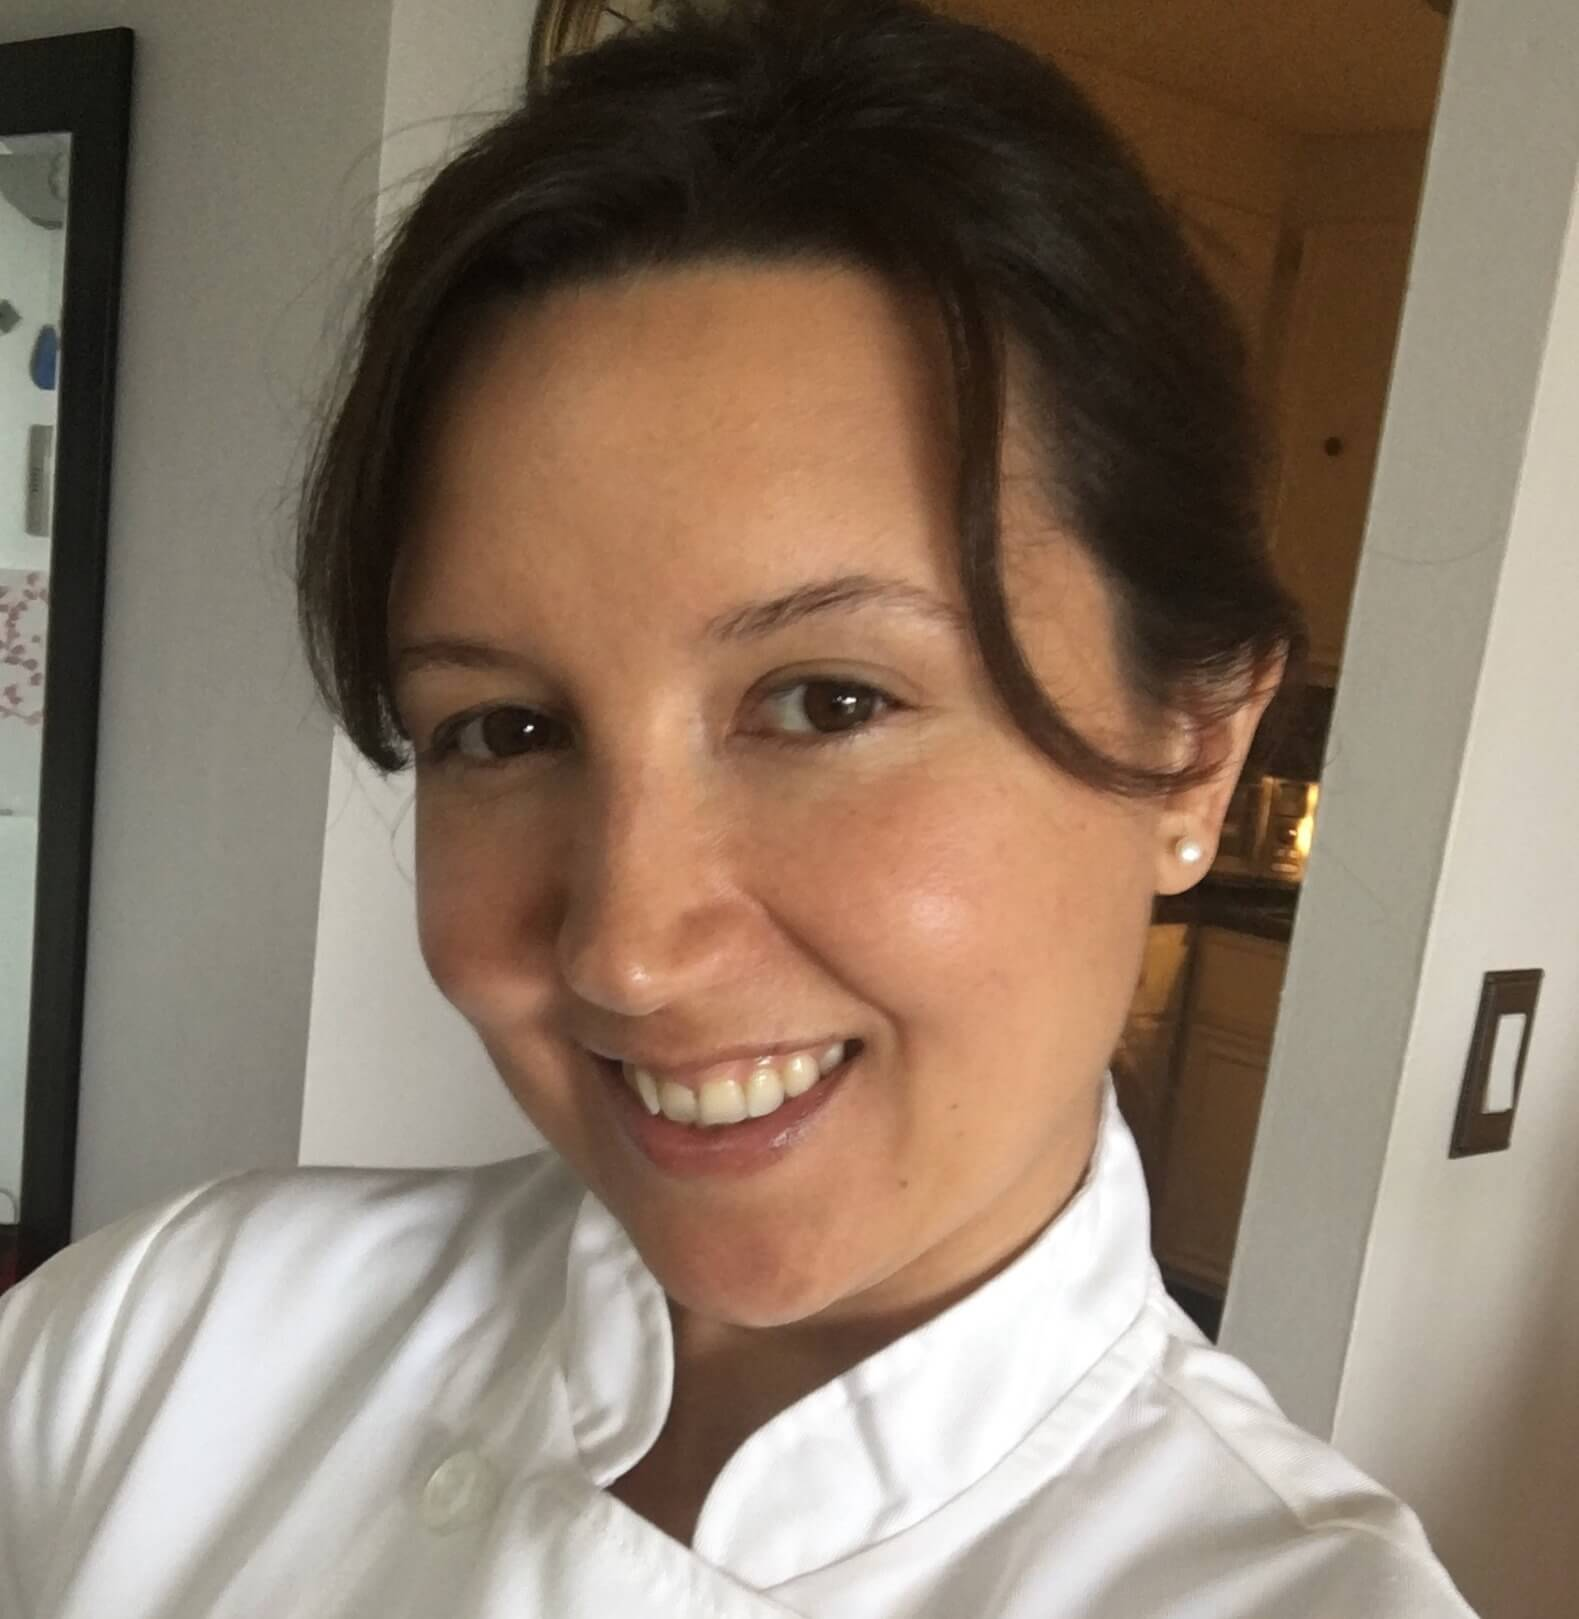 Pastry Arts Certificate Program Success: Maria Dzuzelewski Spotlight